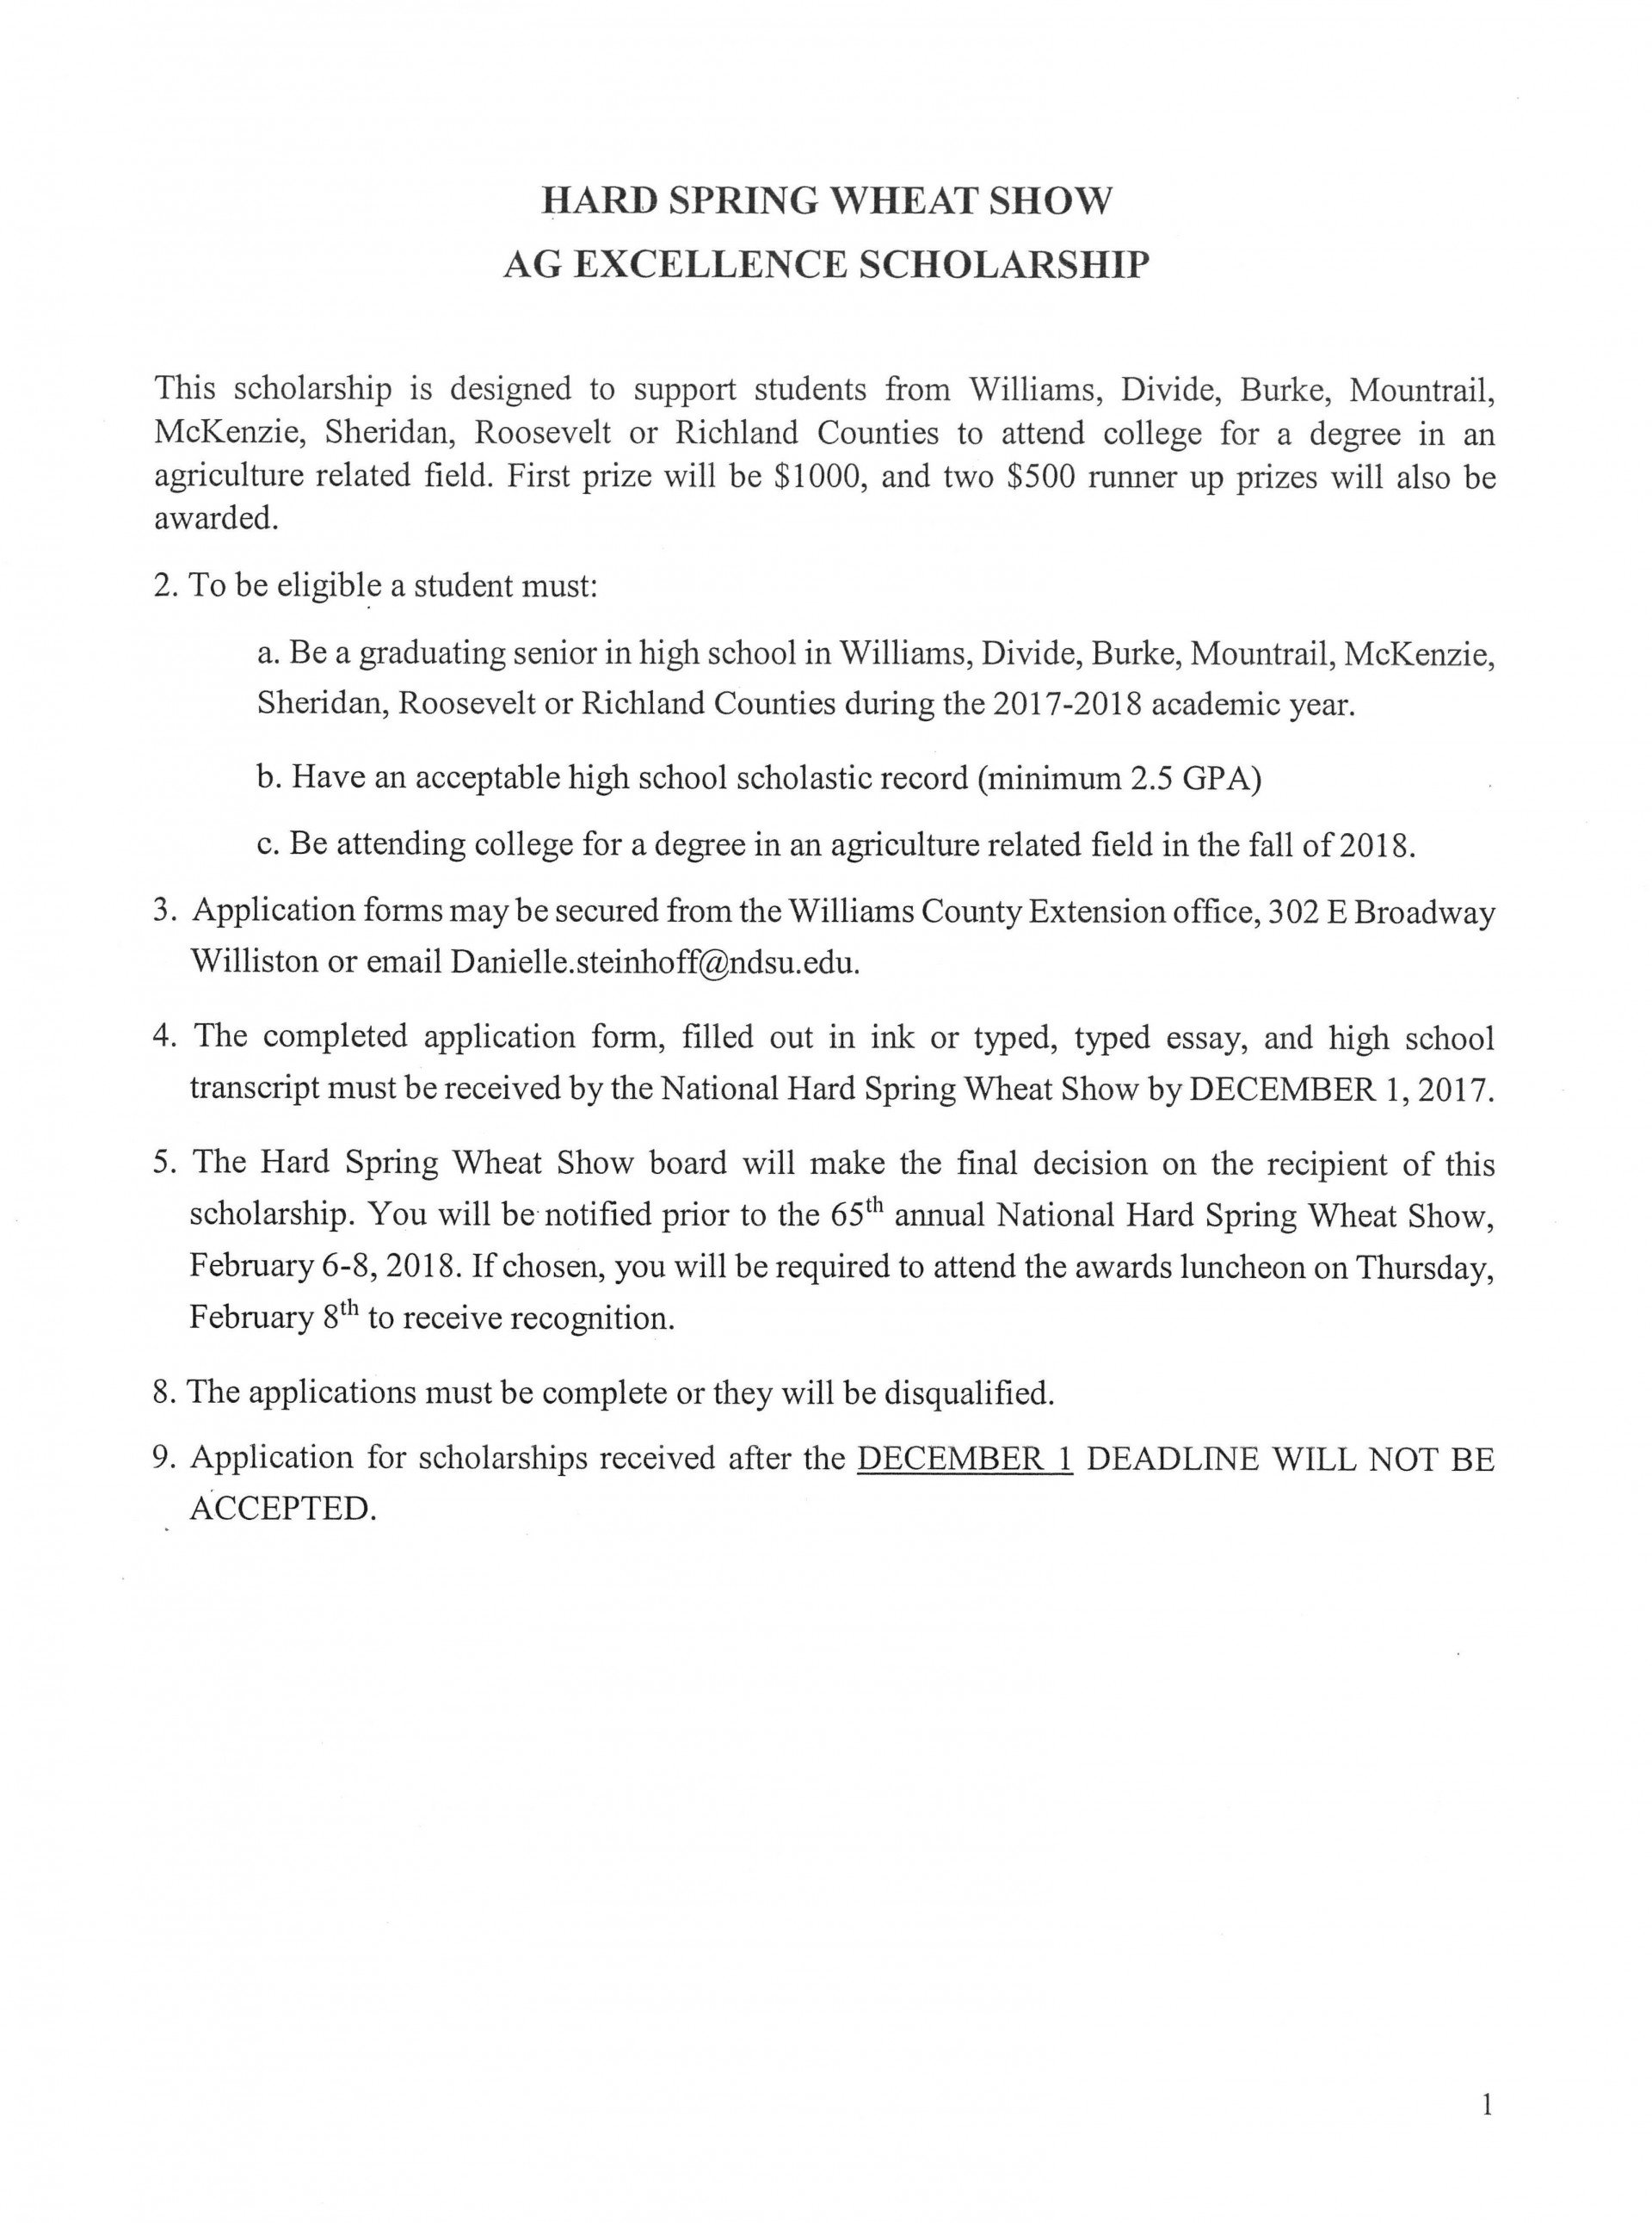 025 Short Essay Scholarships Page 1 Amazing College Easy 1920